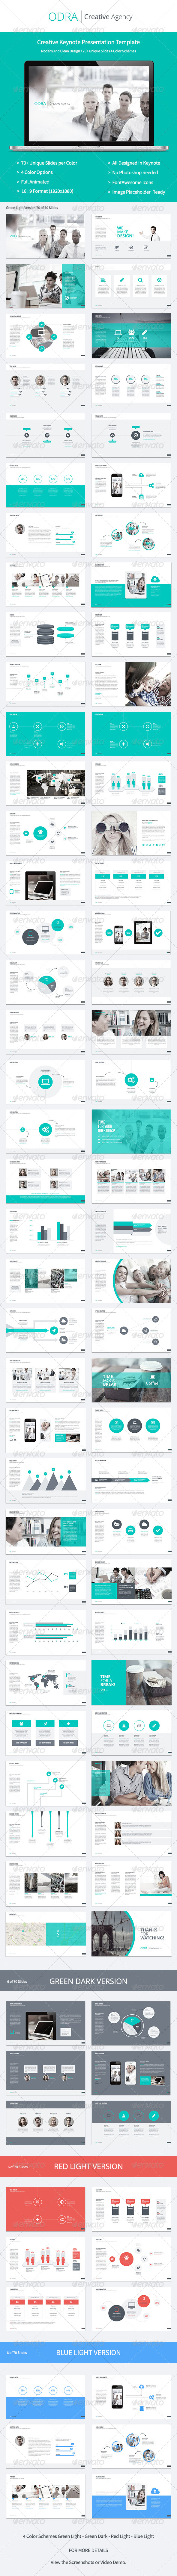 GraphicRiver Odra Creative Keynote Template 8157947